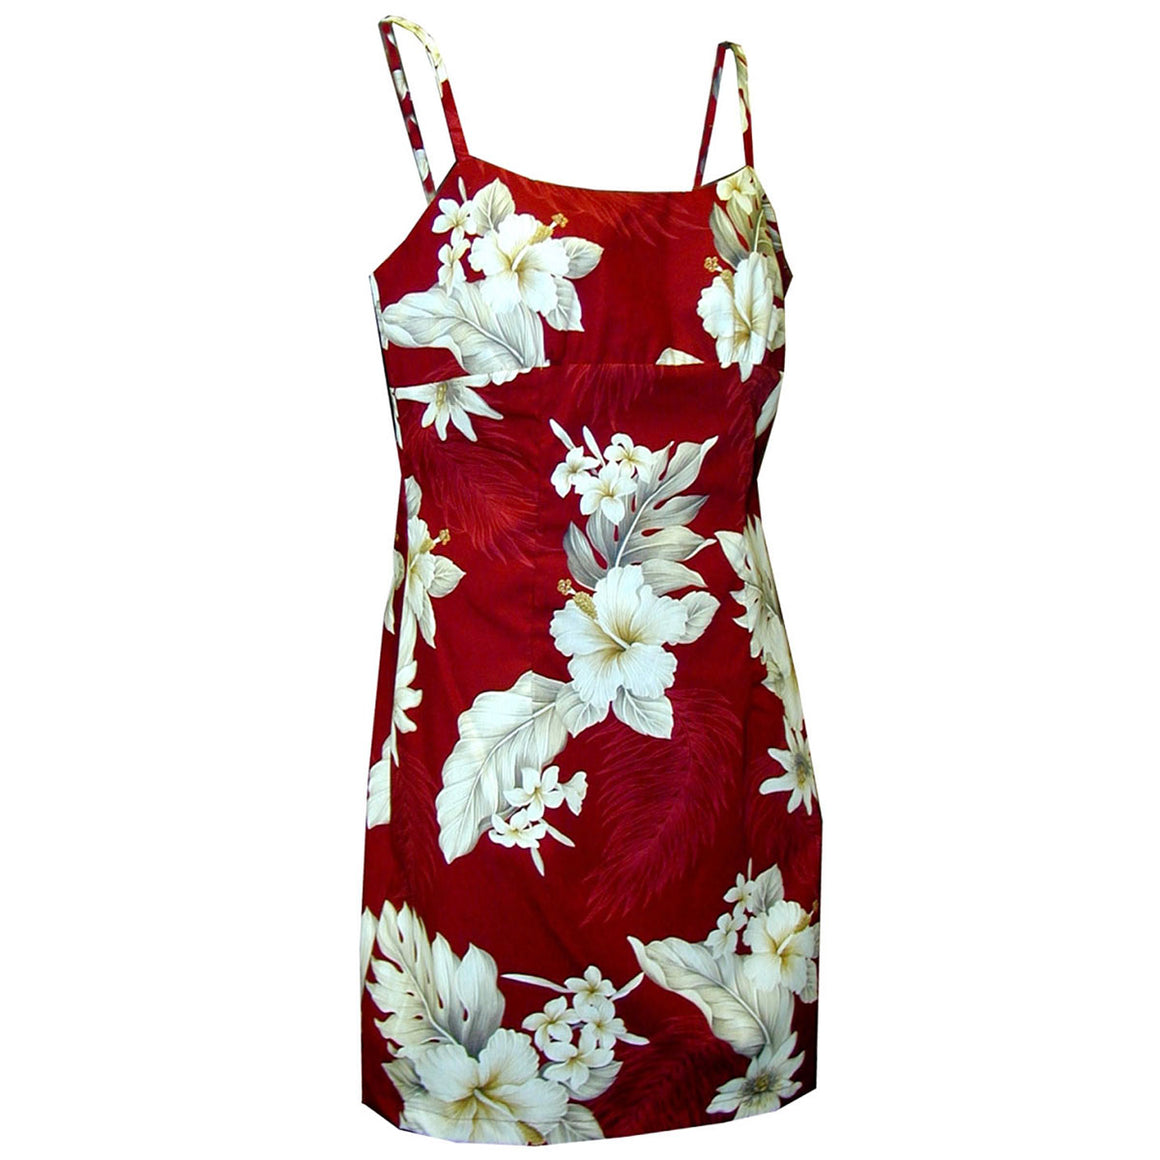 Floral Garden Red Short Spaghetti Dress